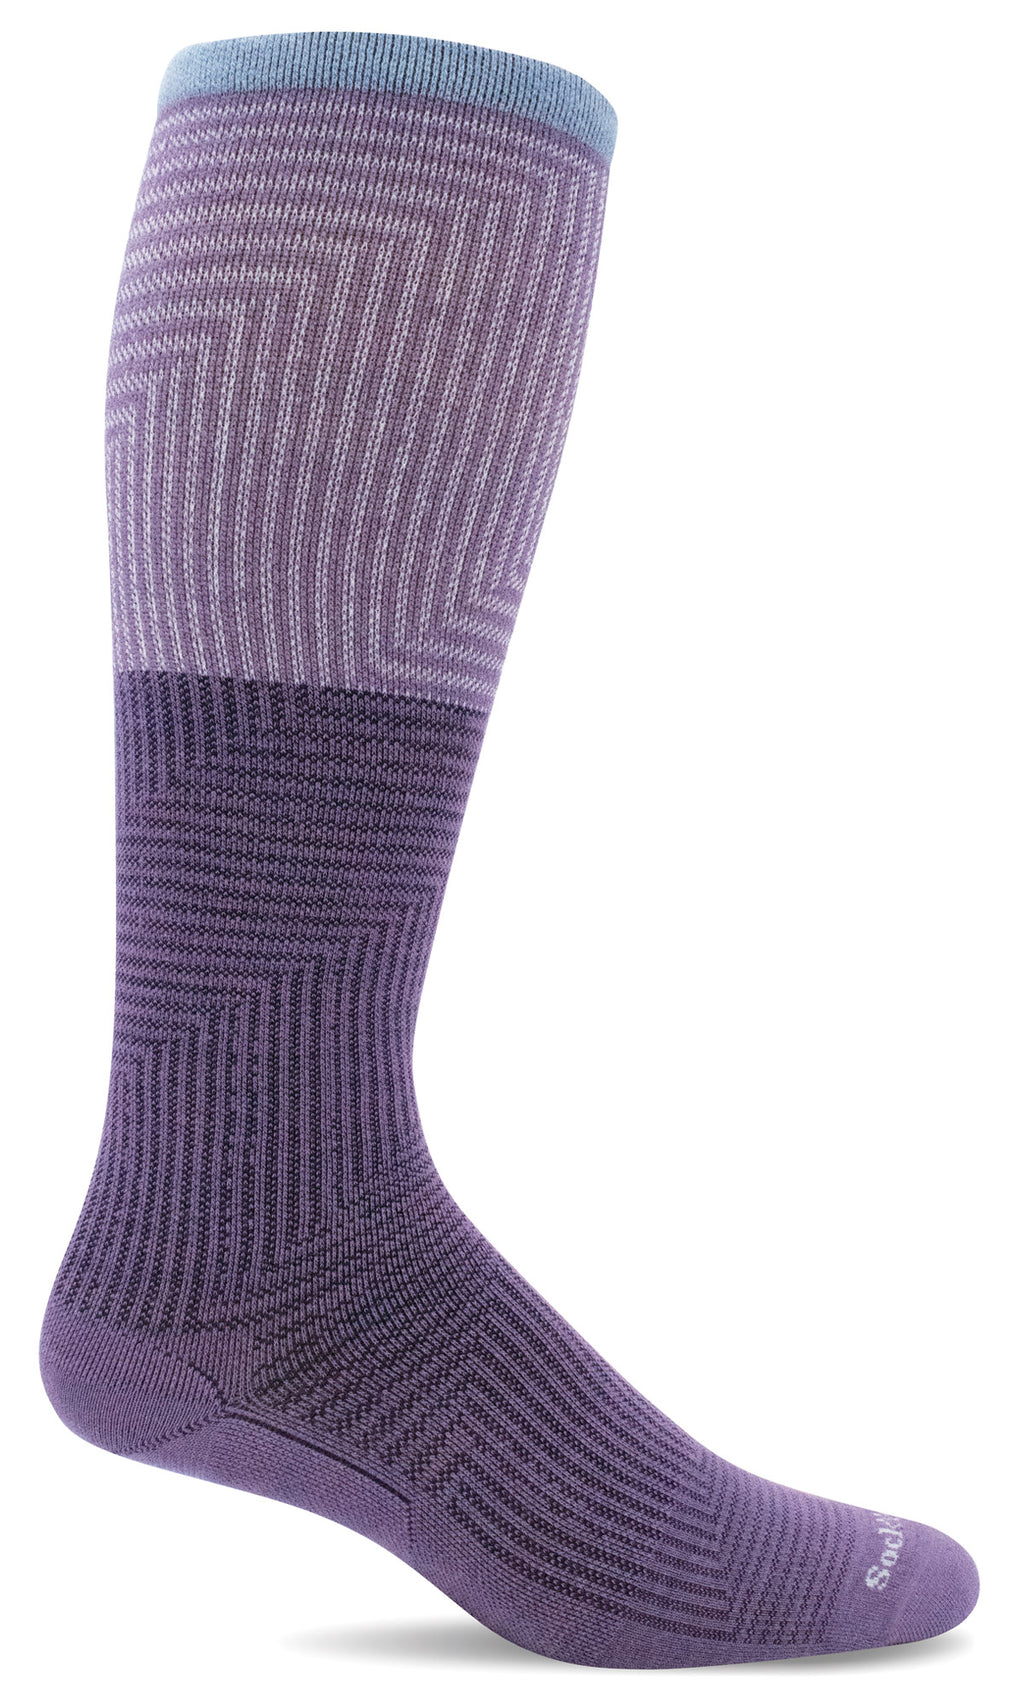 Women's Step Up | Moderate Graduated Compression Socks